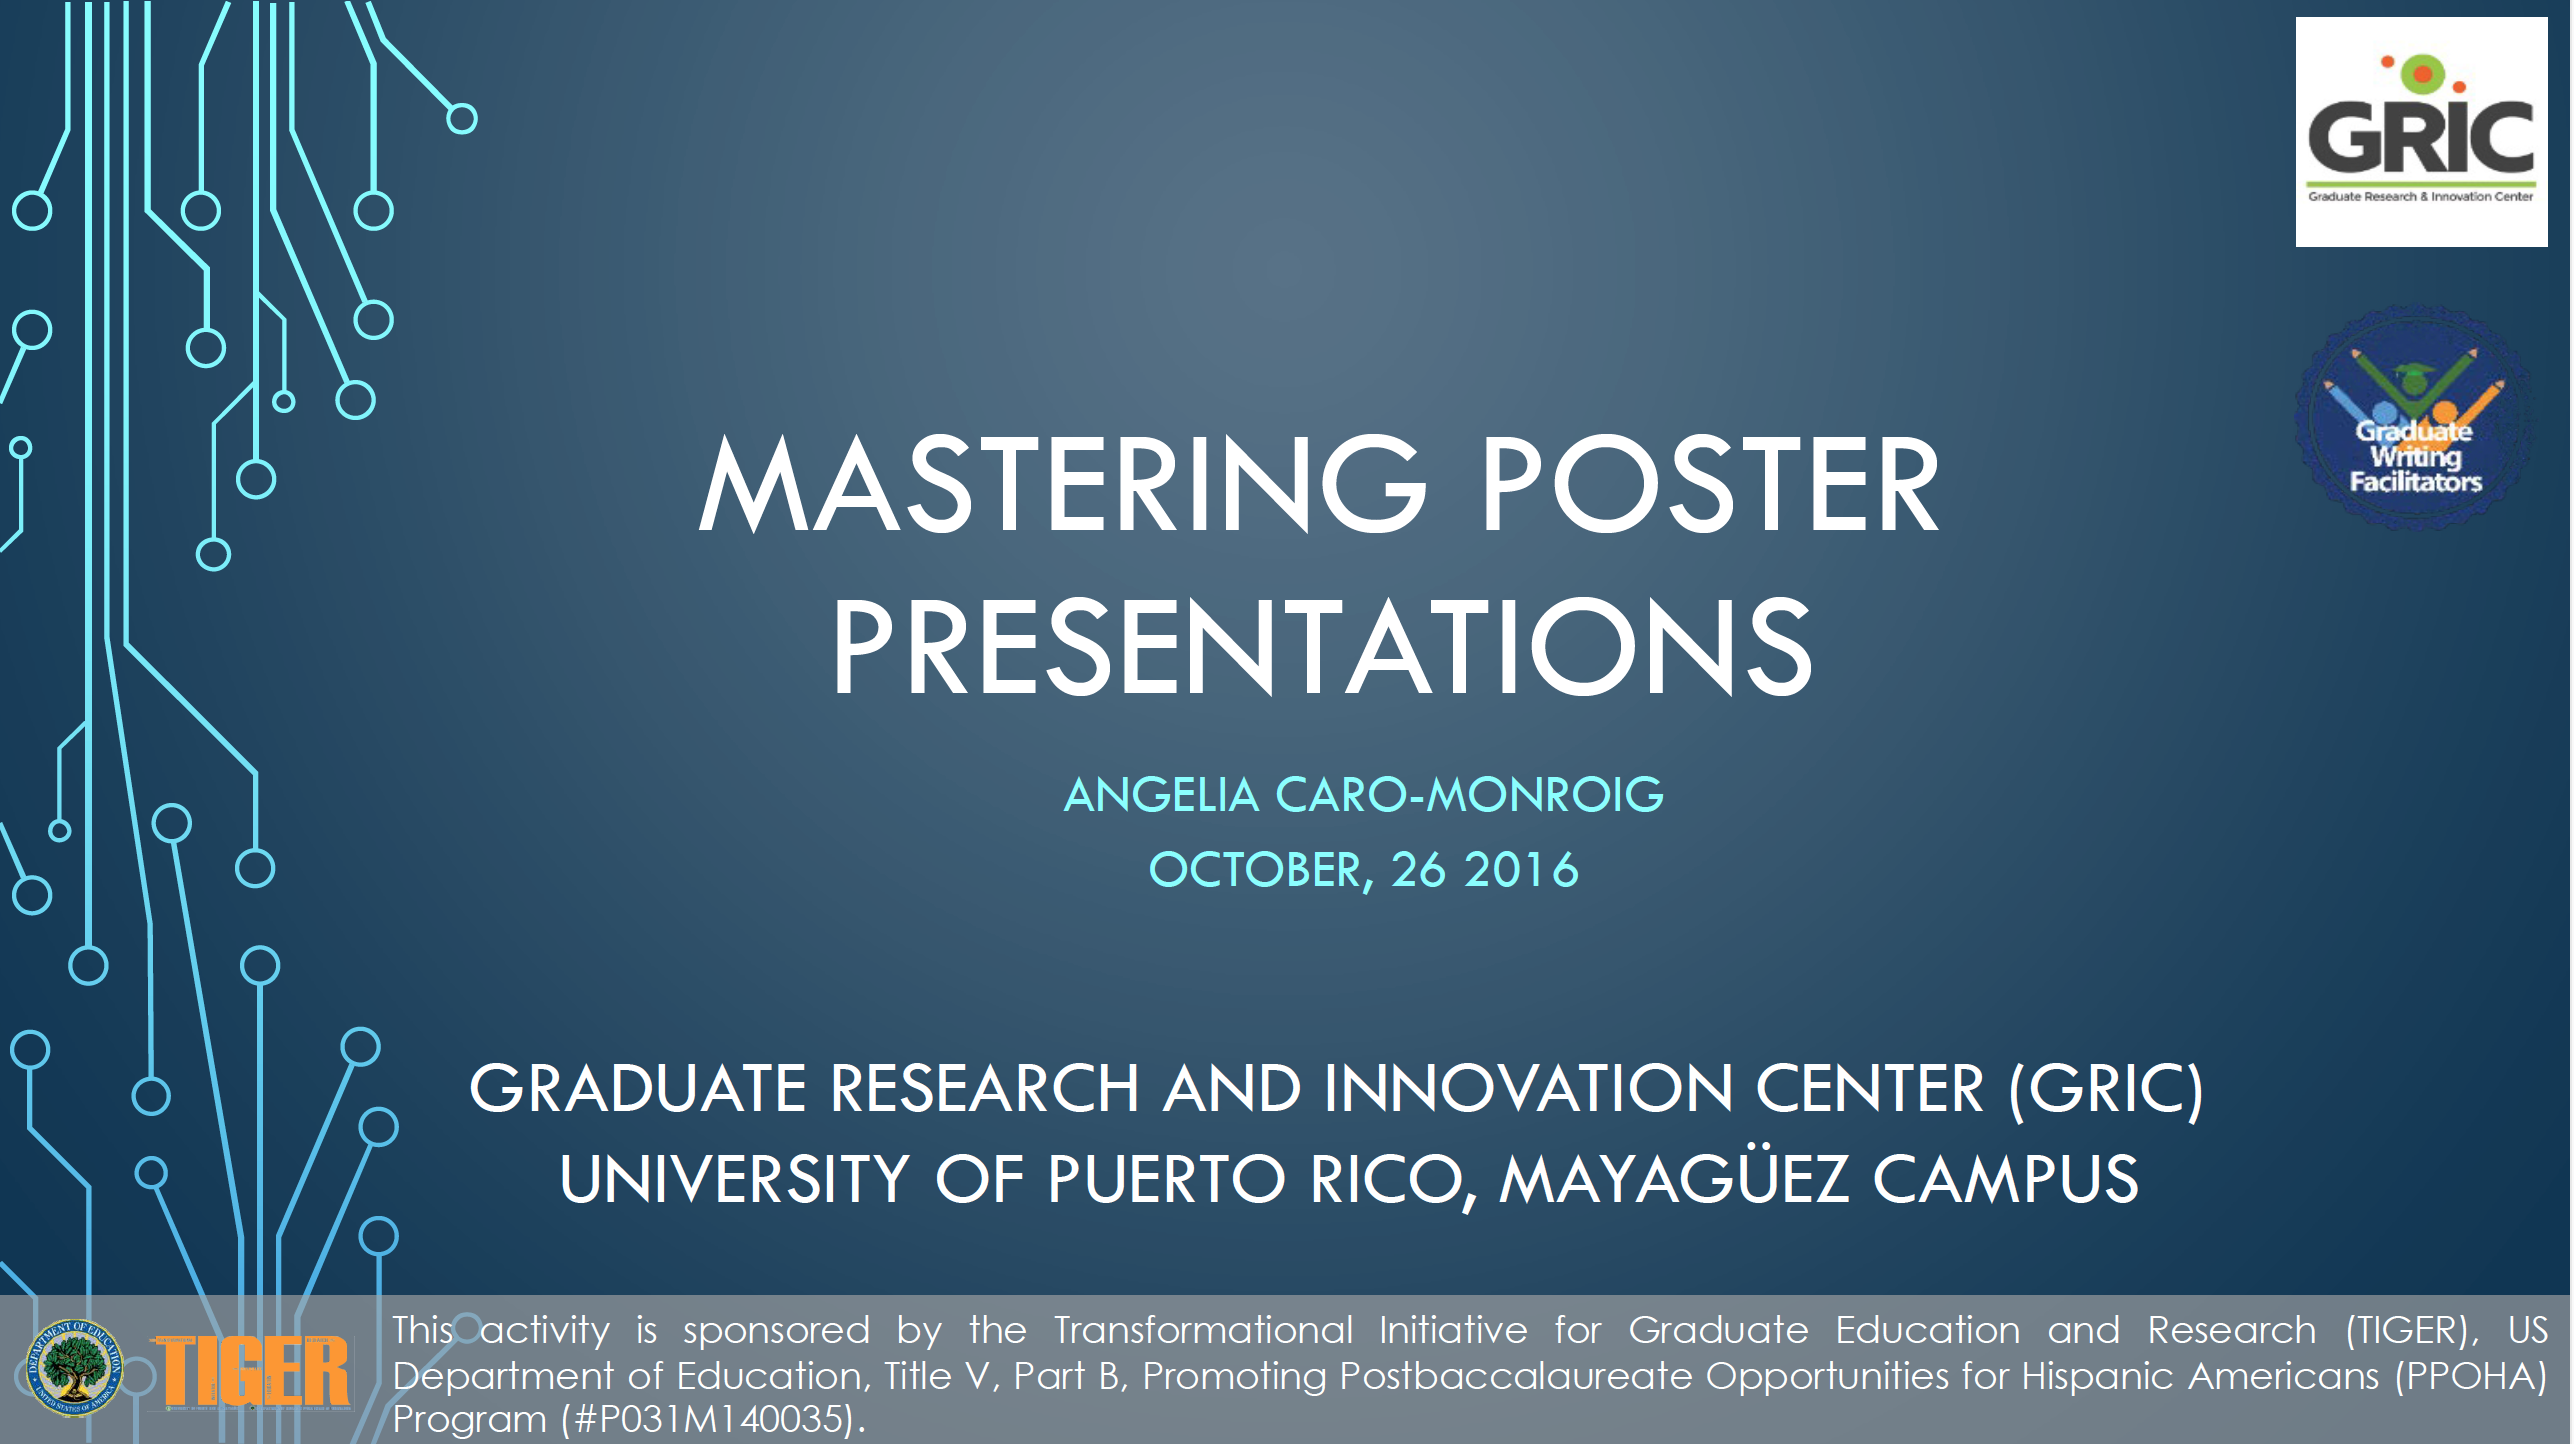 Mastering Posters Presentation